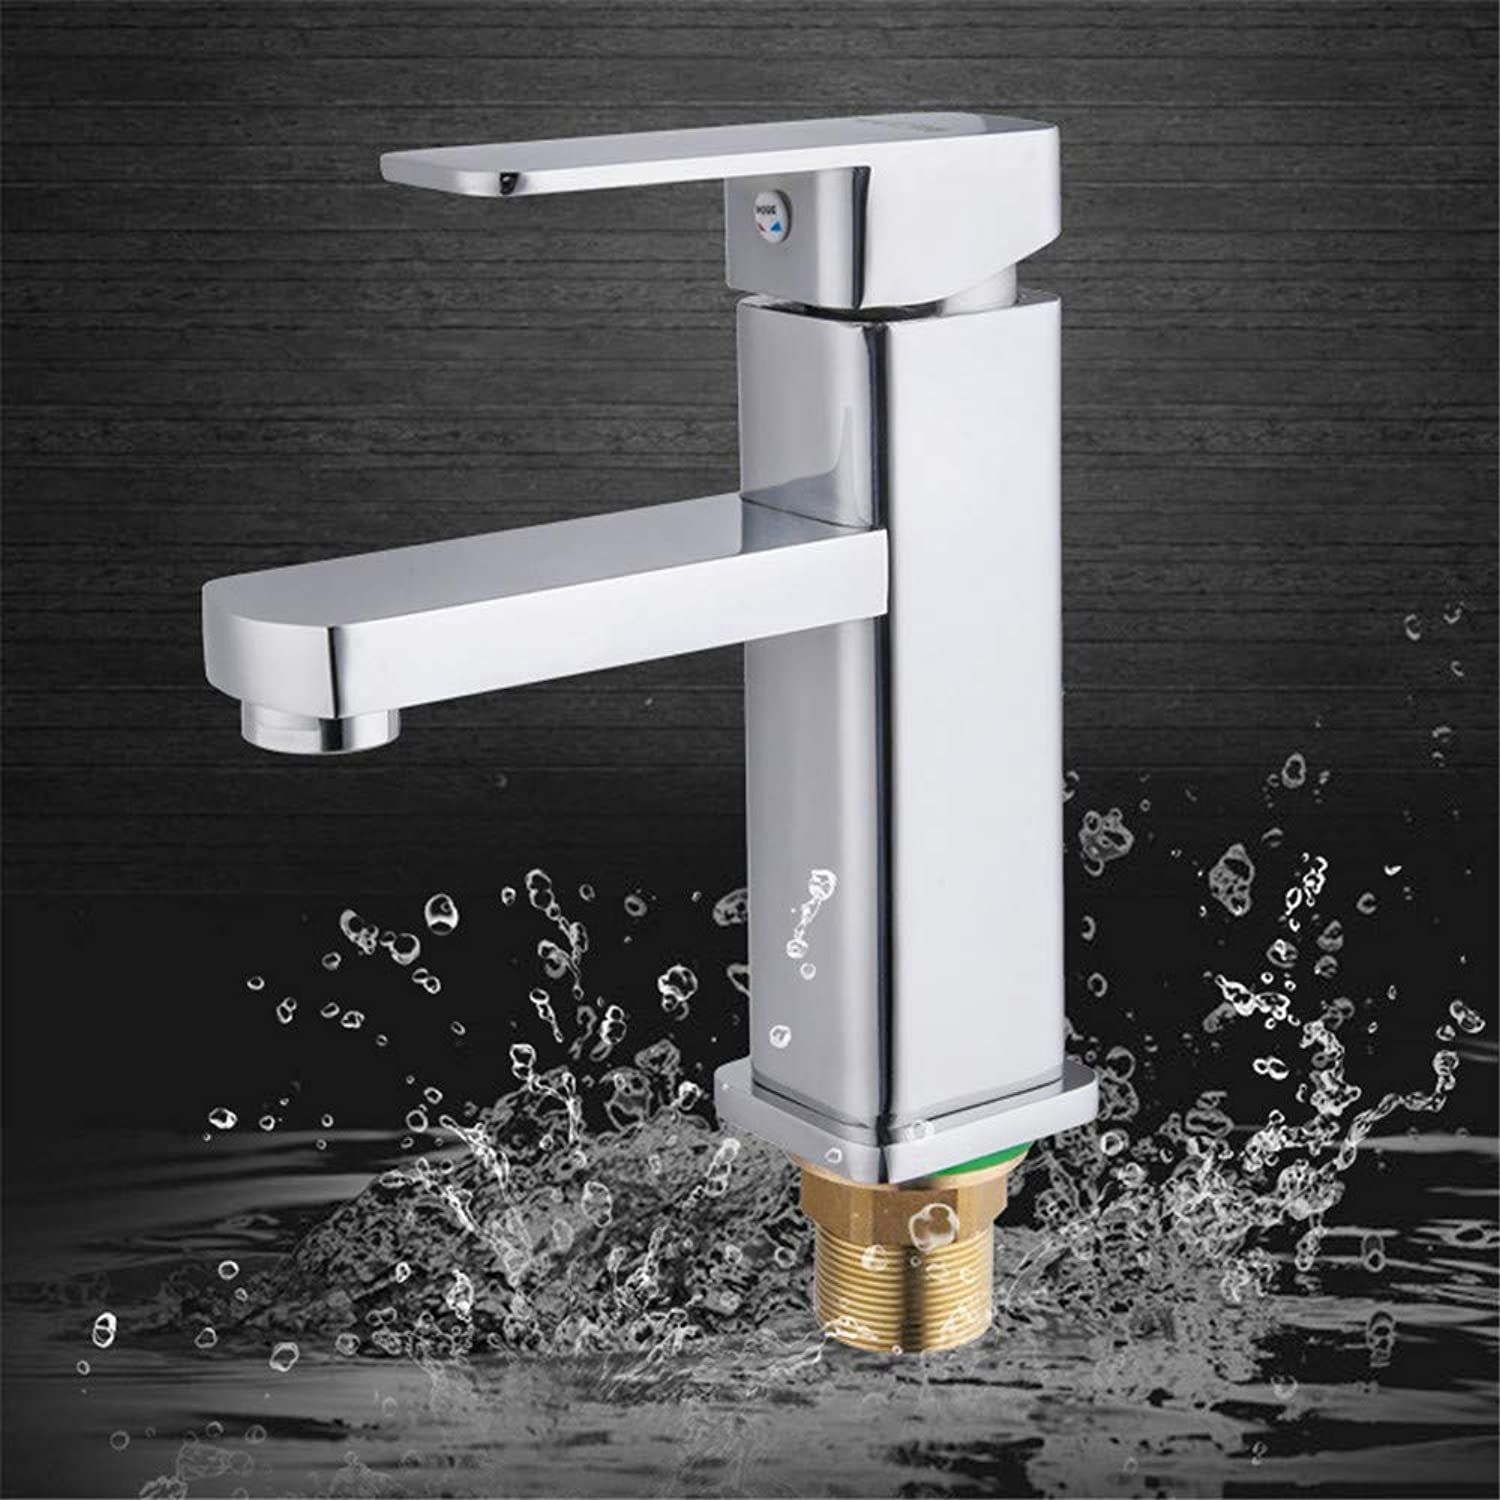 Zhcmy Square Single Hole greenical Hot And Cold Water Mixer Faucet Bathroom Hardware Ware Washbasin Faucet